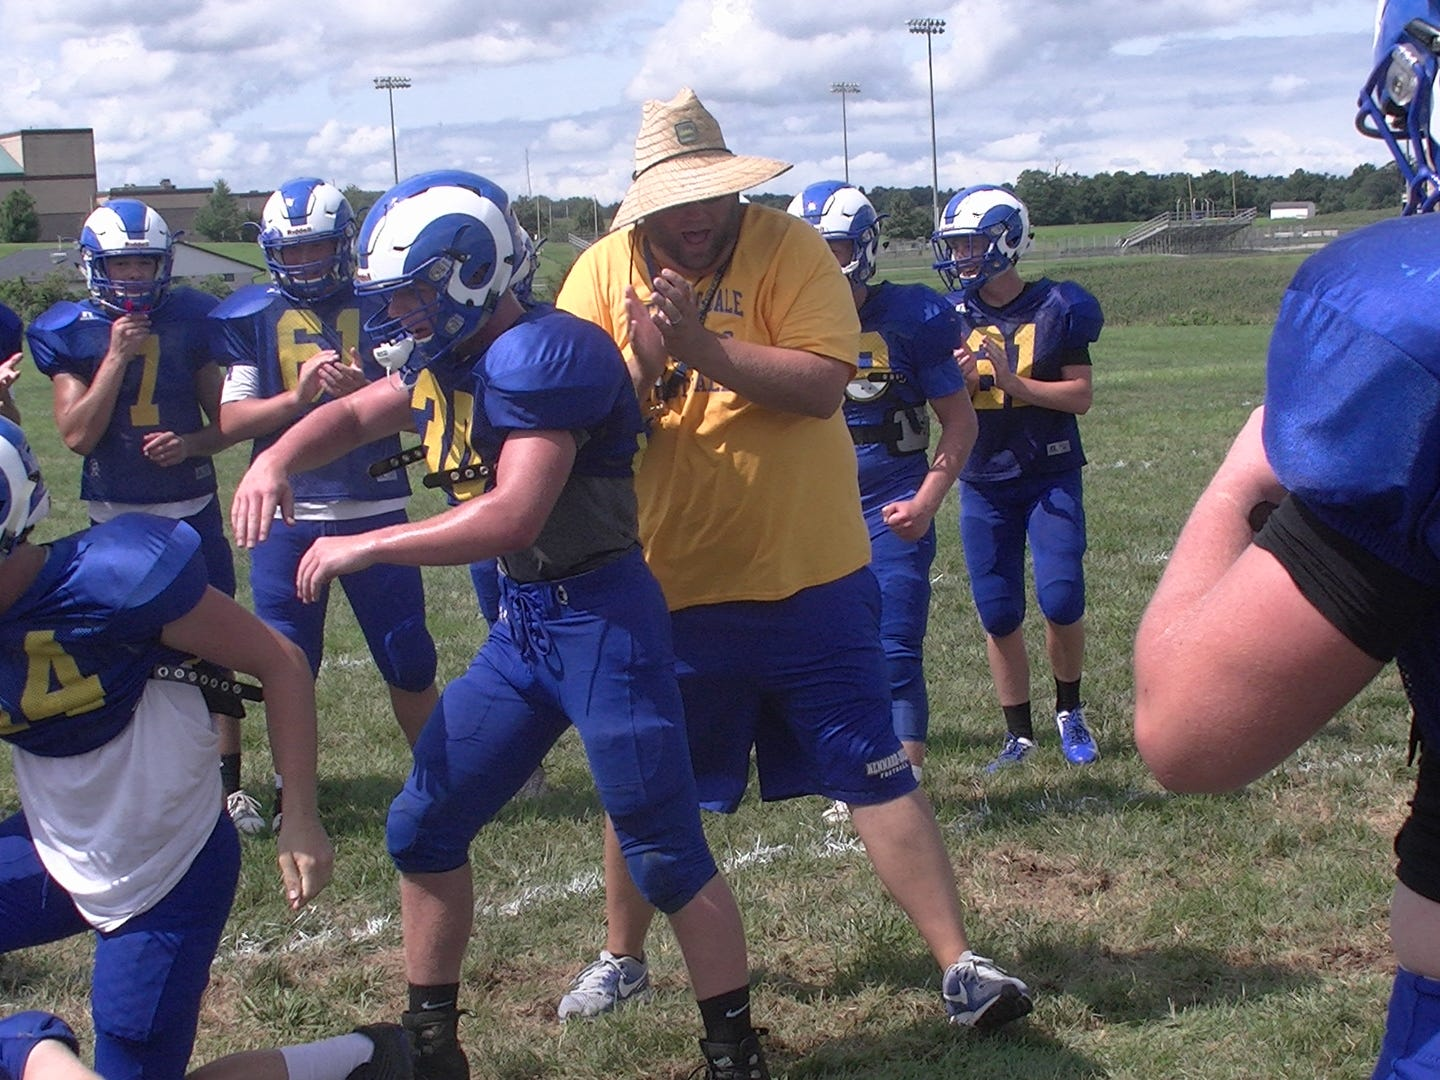 Kennard-Dale football coach Chris Grube applauds as Guy Shrewsbury and Ryan Gibney finish competing in a blocking drill at practice Monday.